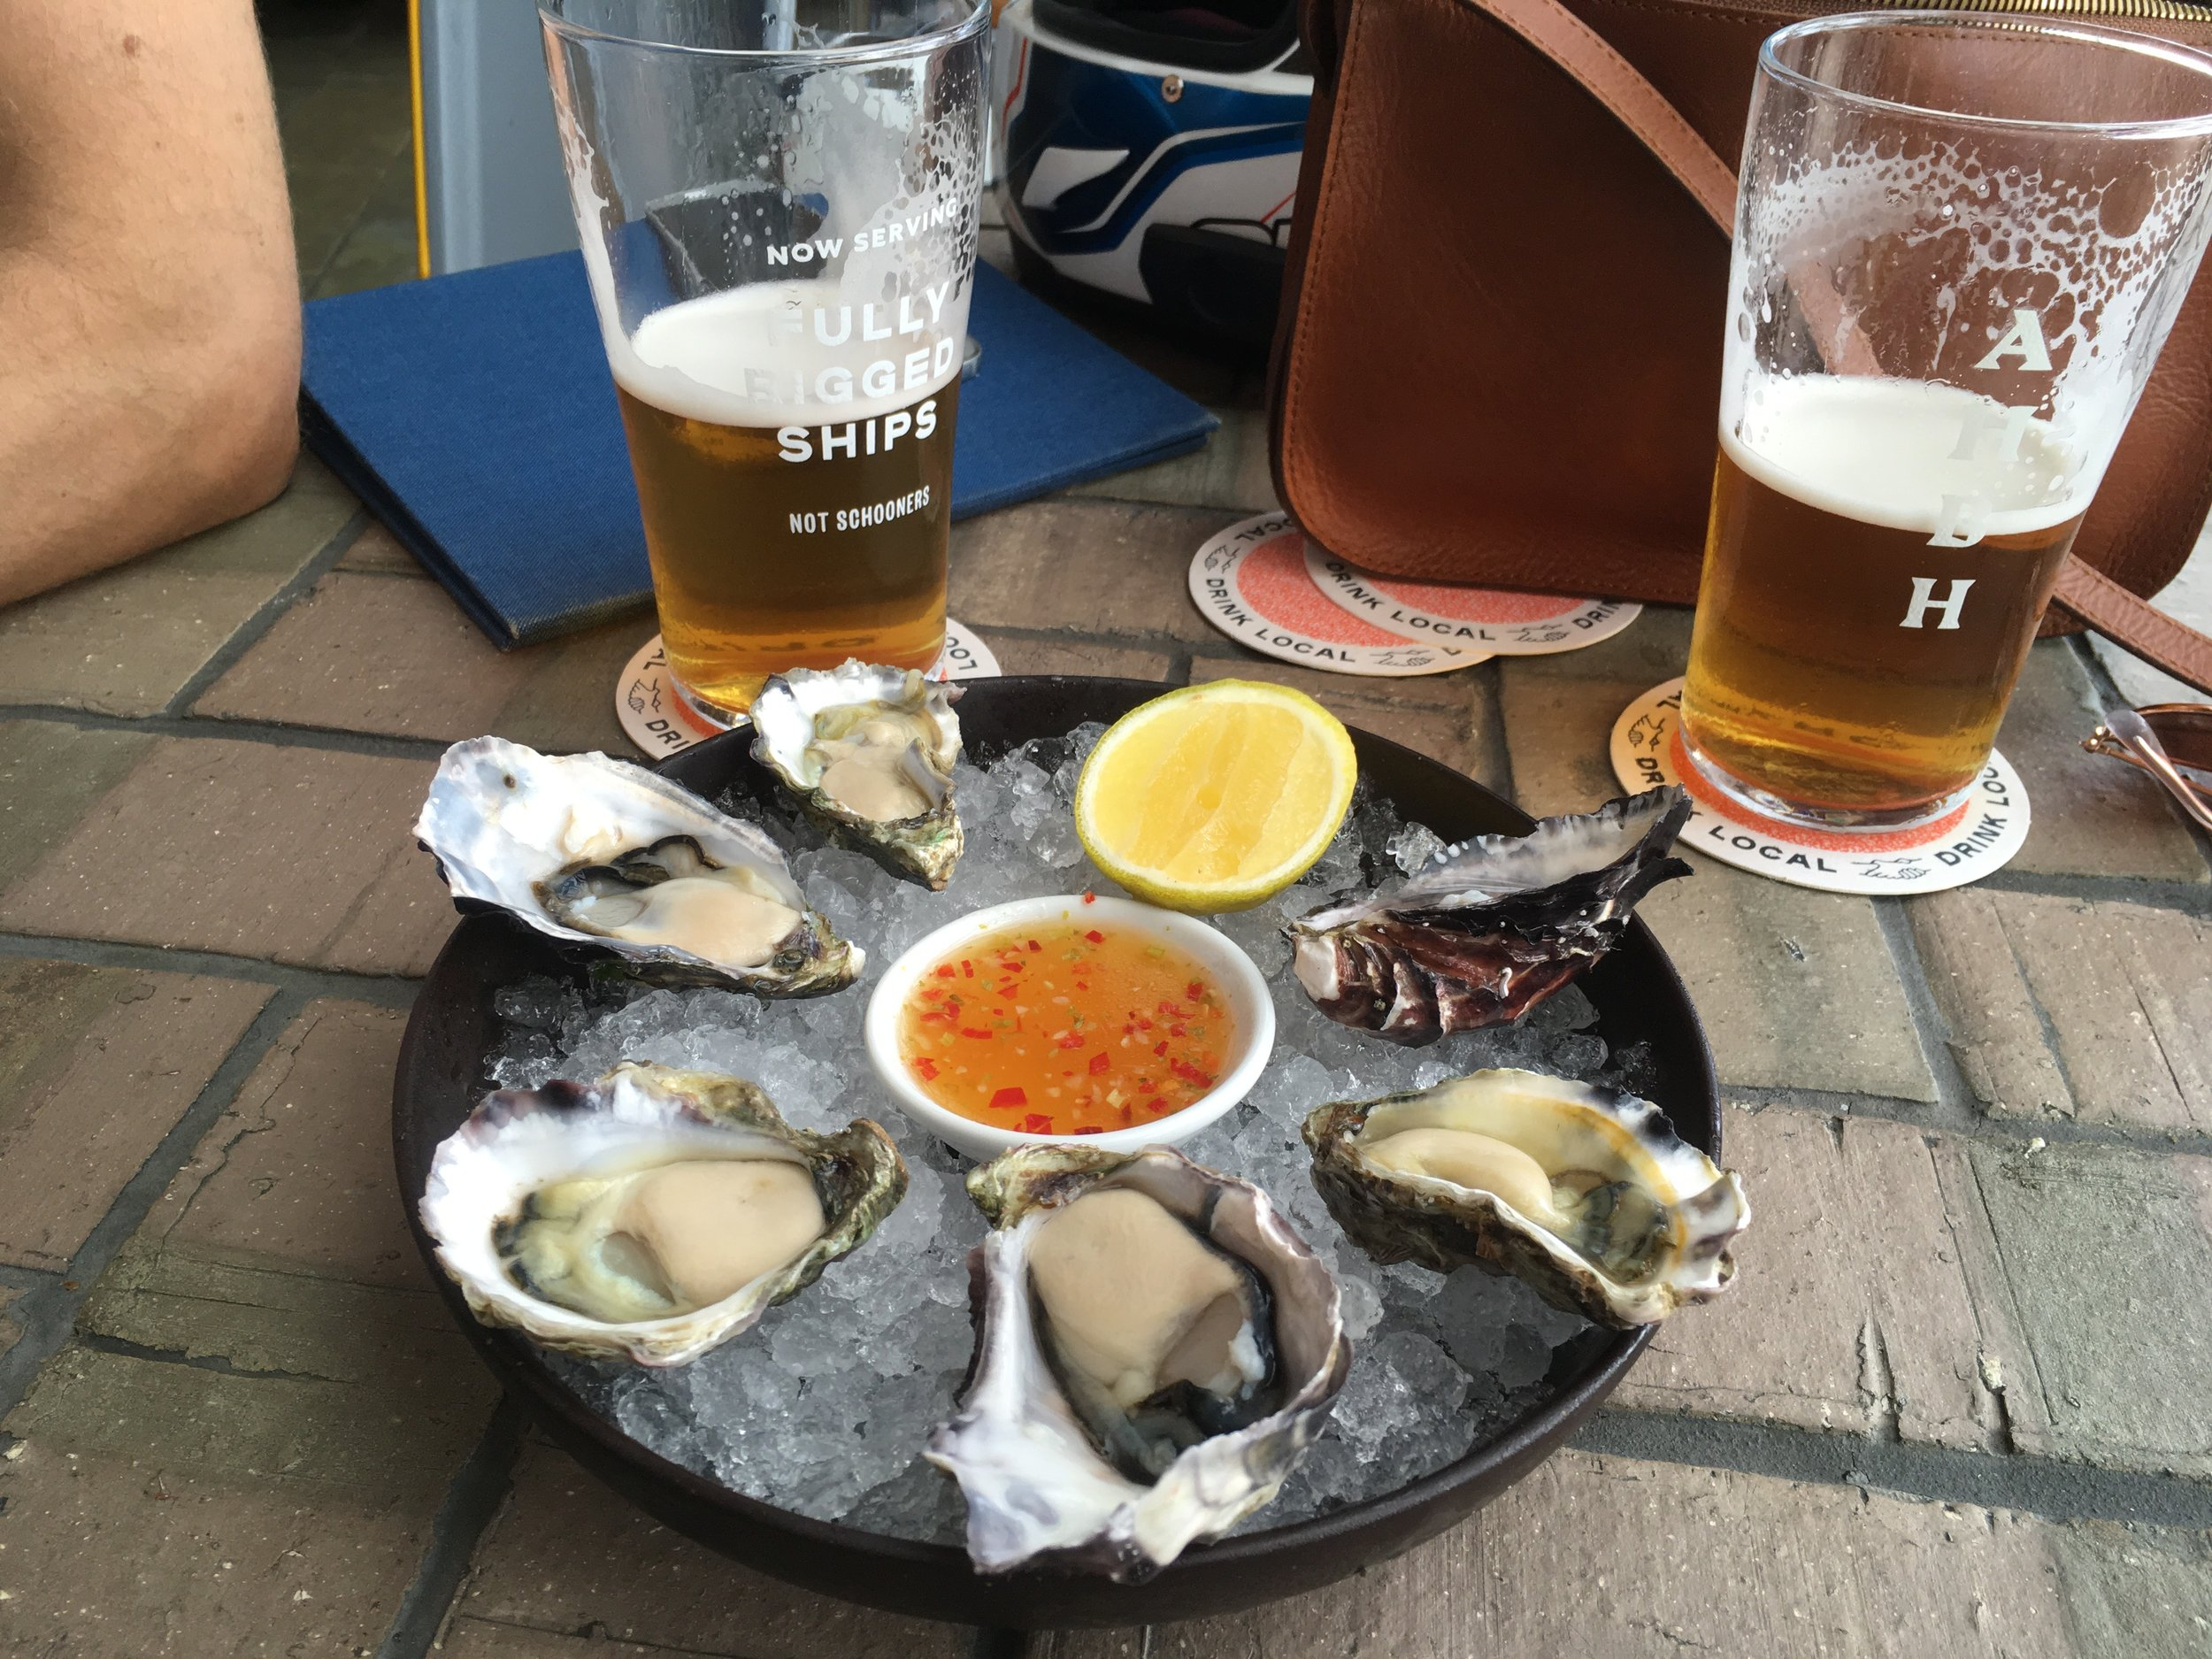 Sydney rock oysters with ginger chili sauce. Muah!